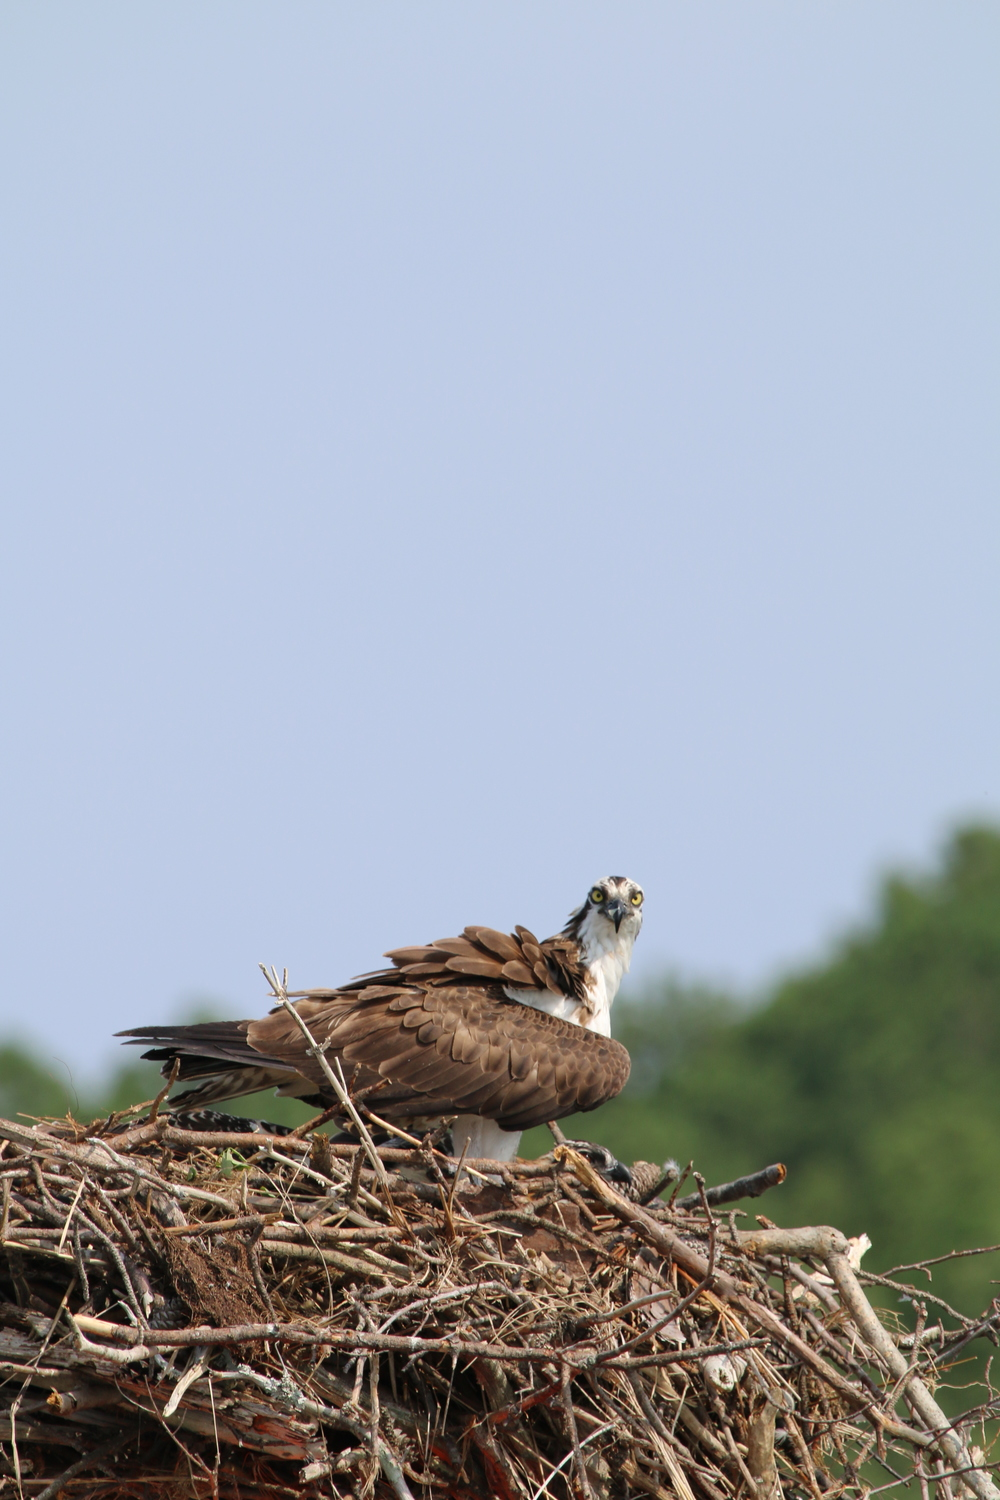 An osprey (Pandion haliaetus) sitting atop its nest on one of the channel markers in the Little Wicomico River. During our 2015 field season, we were greeted everyday by the side to side head-bob of this beautiful guy. The pair had two chicks. If you look closely, you can see the head of one. Photo by Eric M. Patterson